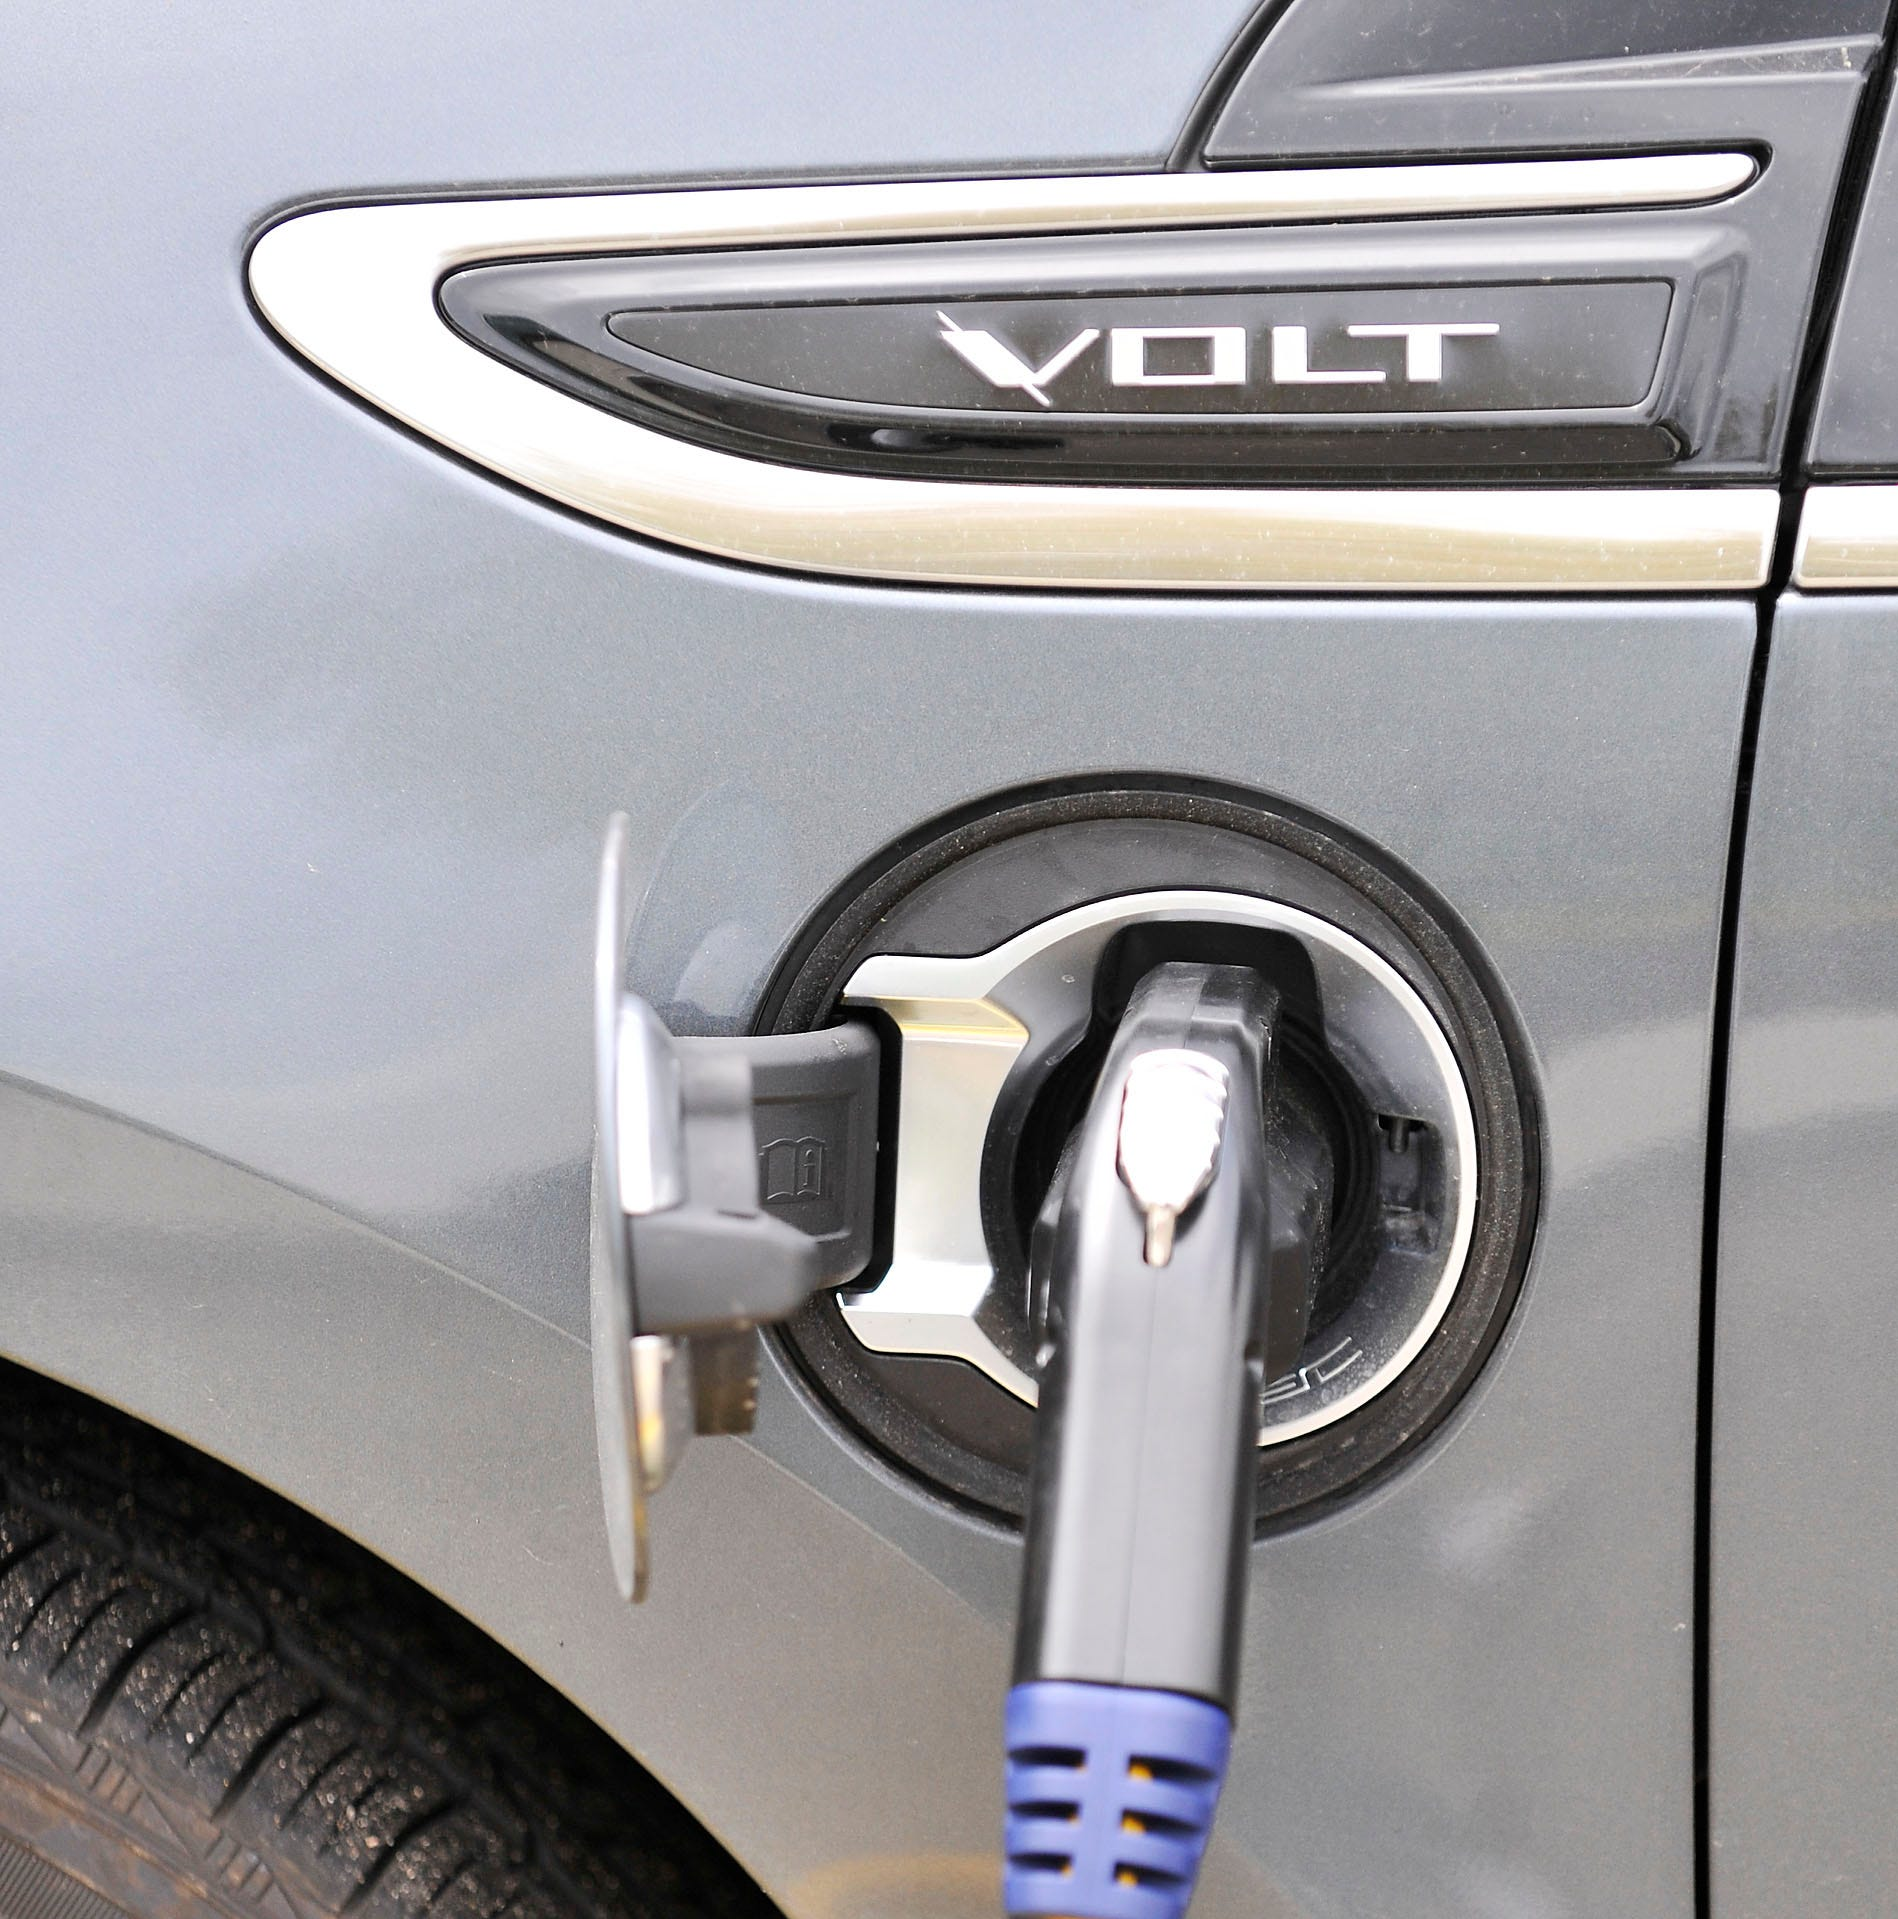 Future of electric-car tax credit up in the air